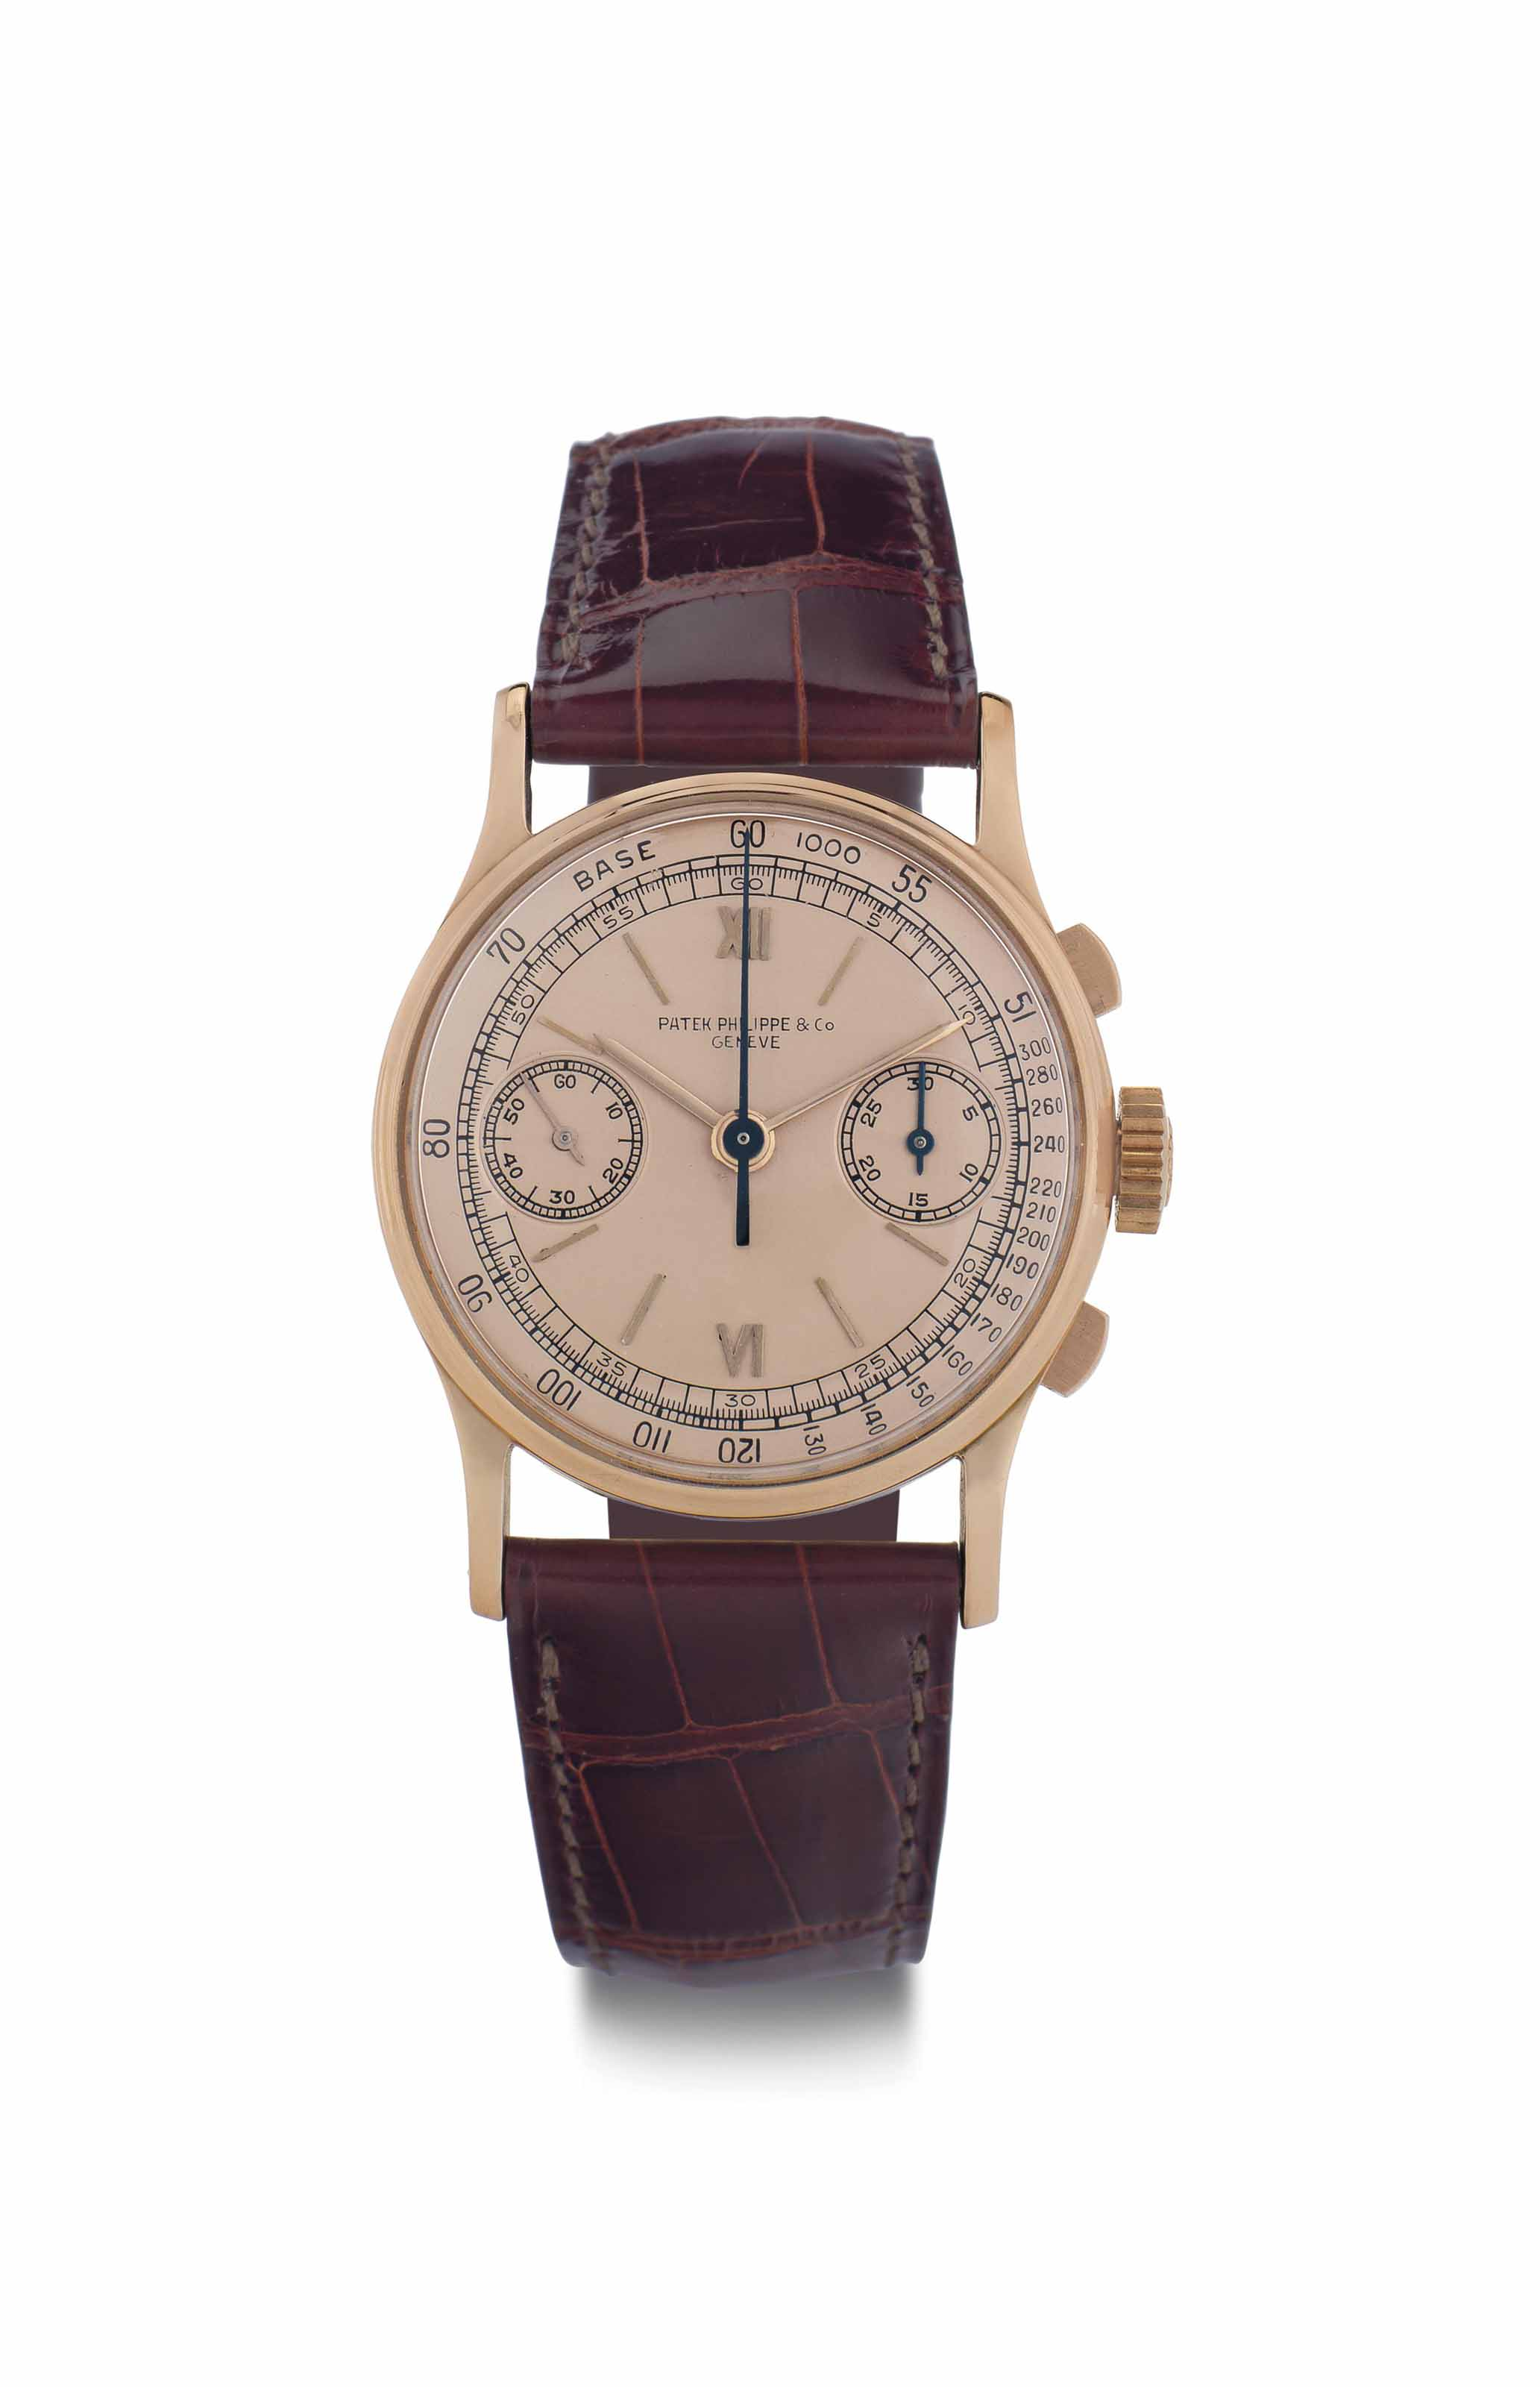 Patek Philippe. A Fine and Rare 18k Pink Gold Chronograph Wristwatch with Pink Dial